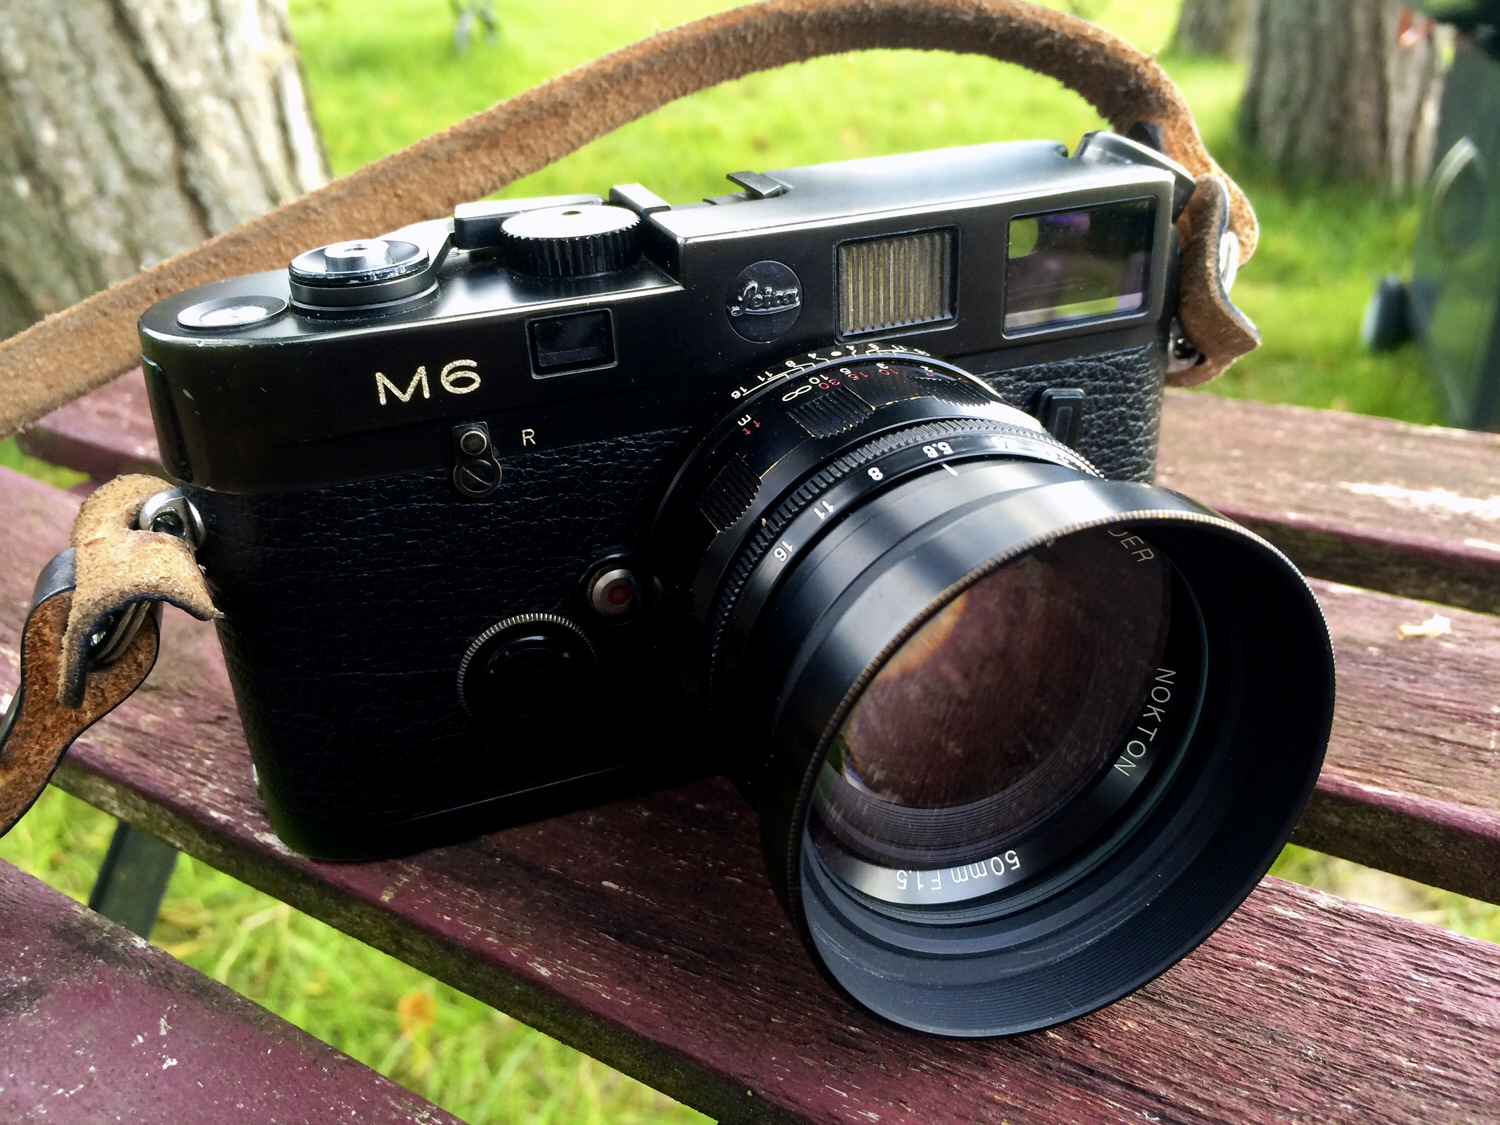 leica m6 front view with voigtlander 50 1.5